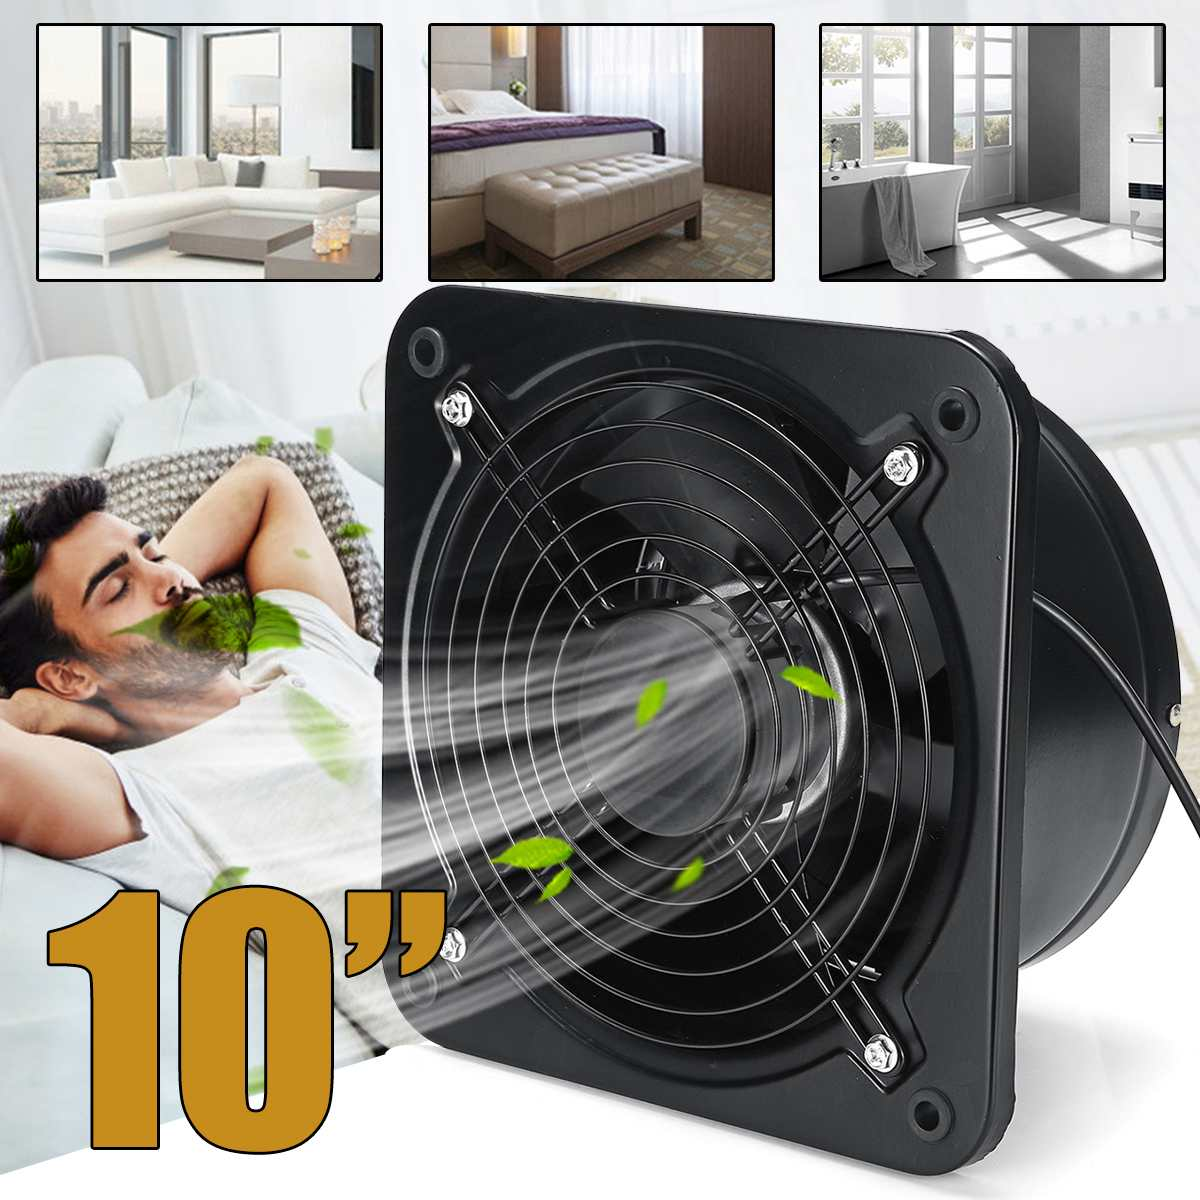 125W 10 Wall Window Extractor Ventilation Fan 220V Silent Bathroom Kitchen Toilet High Speed Ventilator Industrial Exhaust Fan125W 10 Wall Window Extractor Ventilation Fan 220V Silent Bathroom Kitchen Toilet High Speed Ventilator Industrial Exhaust Fan